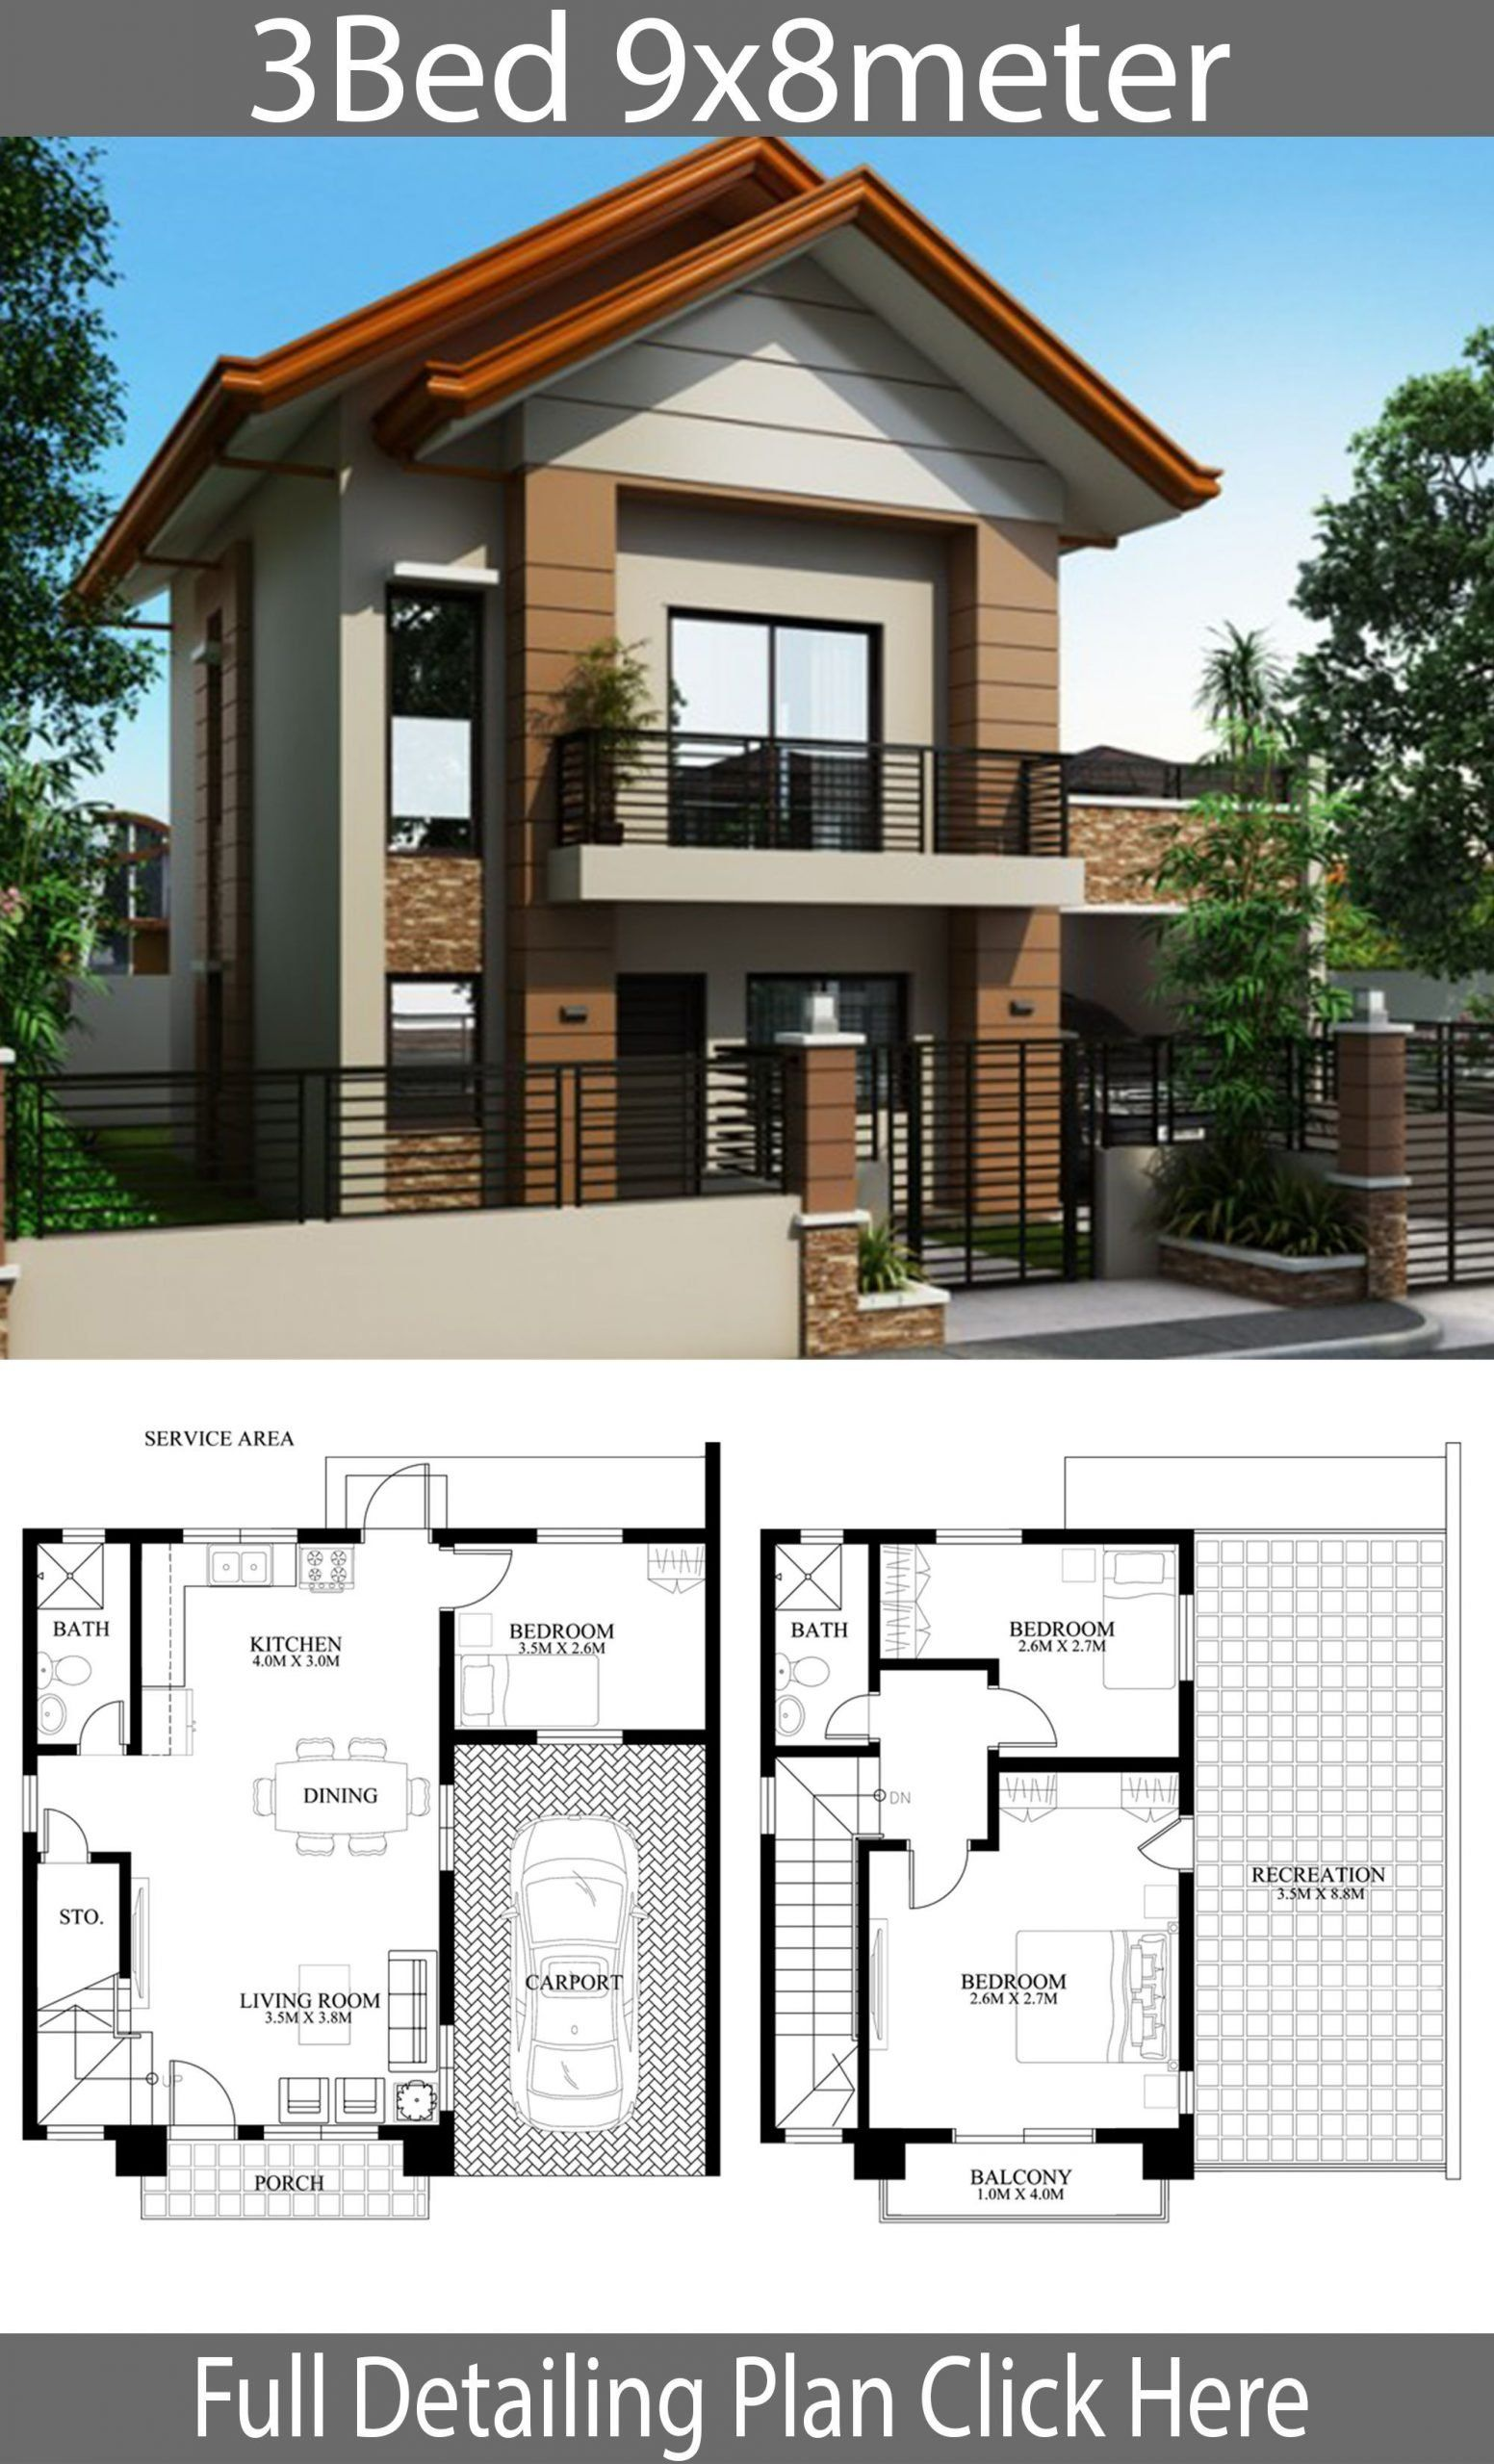 Modern House Designs 2 Story 5 Home Plan Ideas 8x13m 9x8m 10x13m 11x12m Model House Plan Architectural House Plans 2 Storey House Design